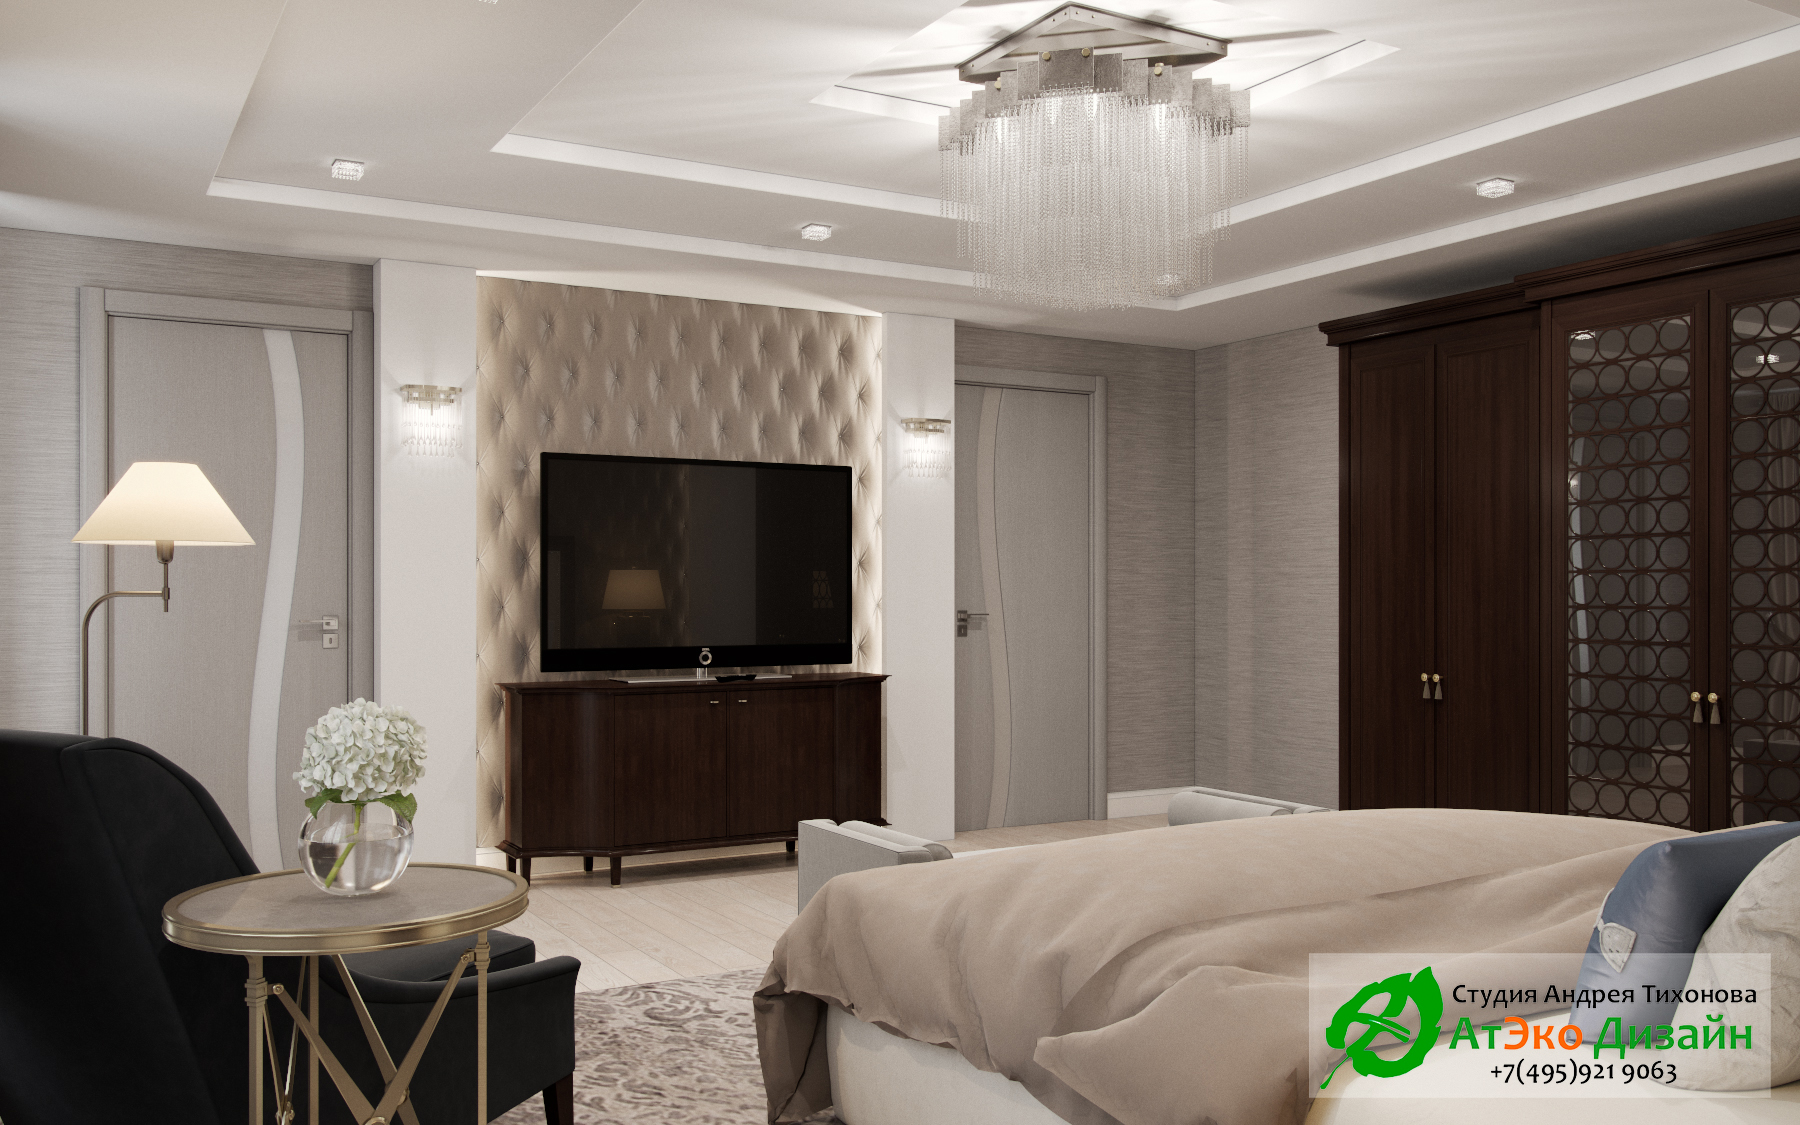 03_Uglich_Apartment_Bedroom_05